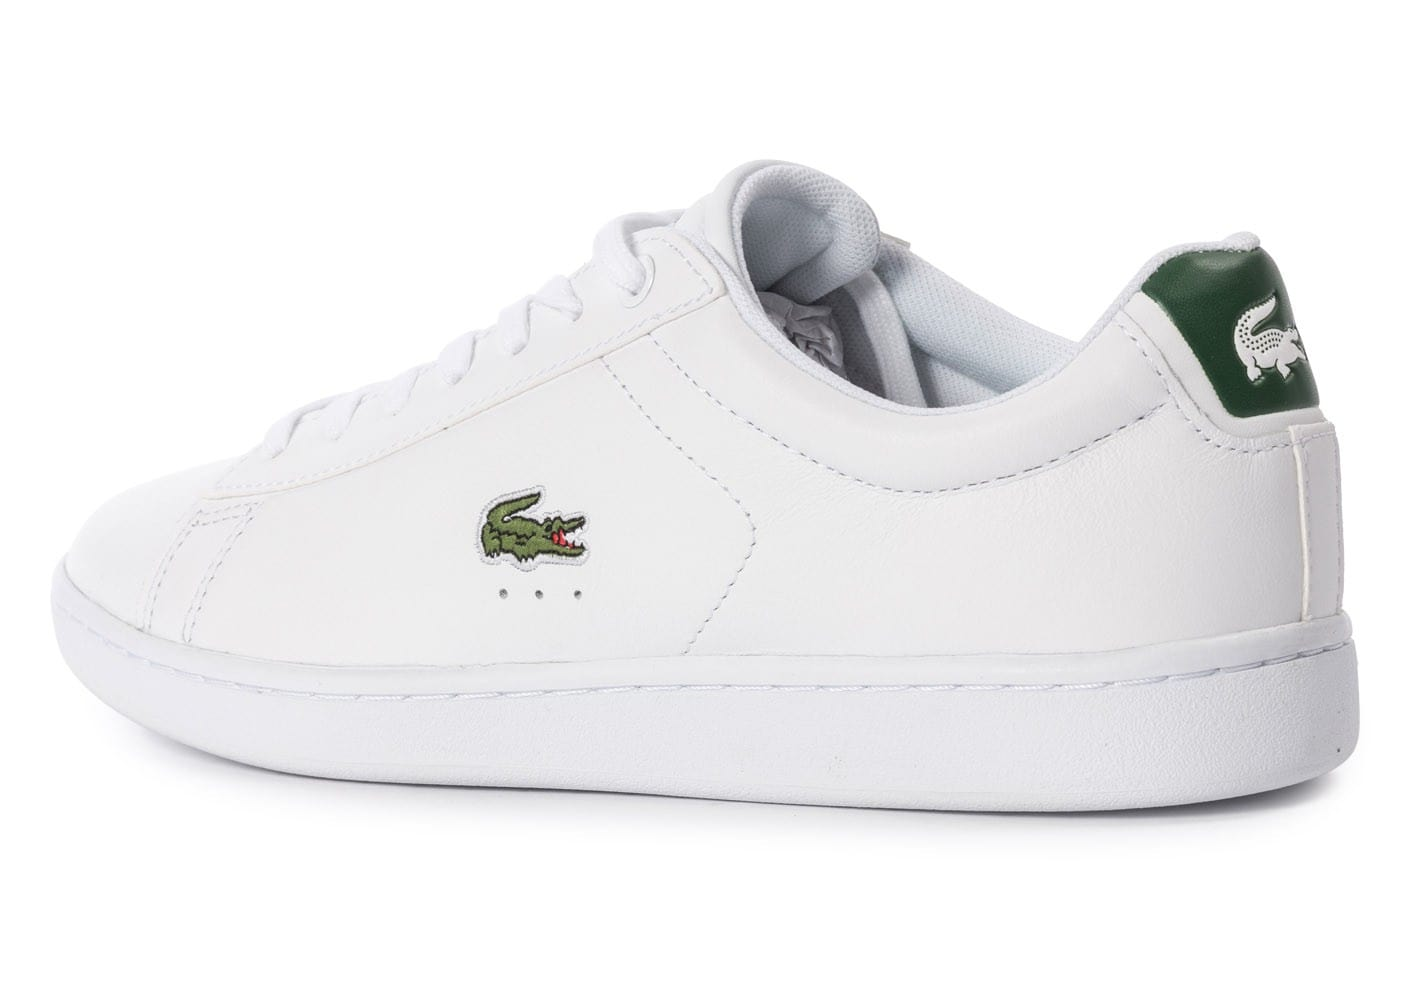 Lacoste Carnaby EL blanche et verte Chaussures Baskets